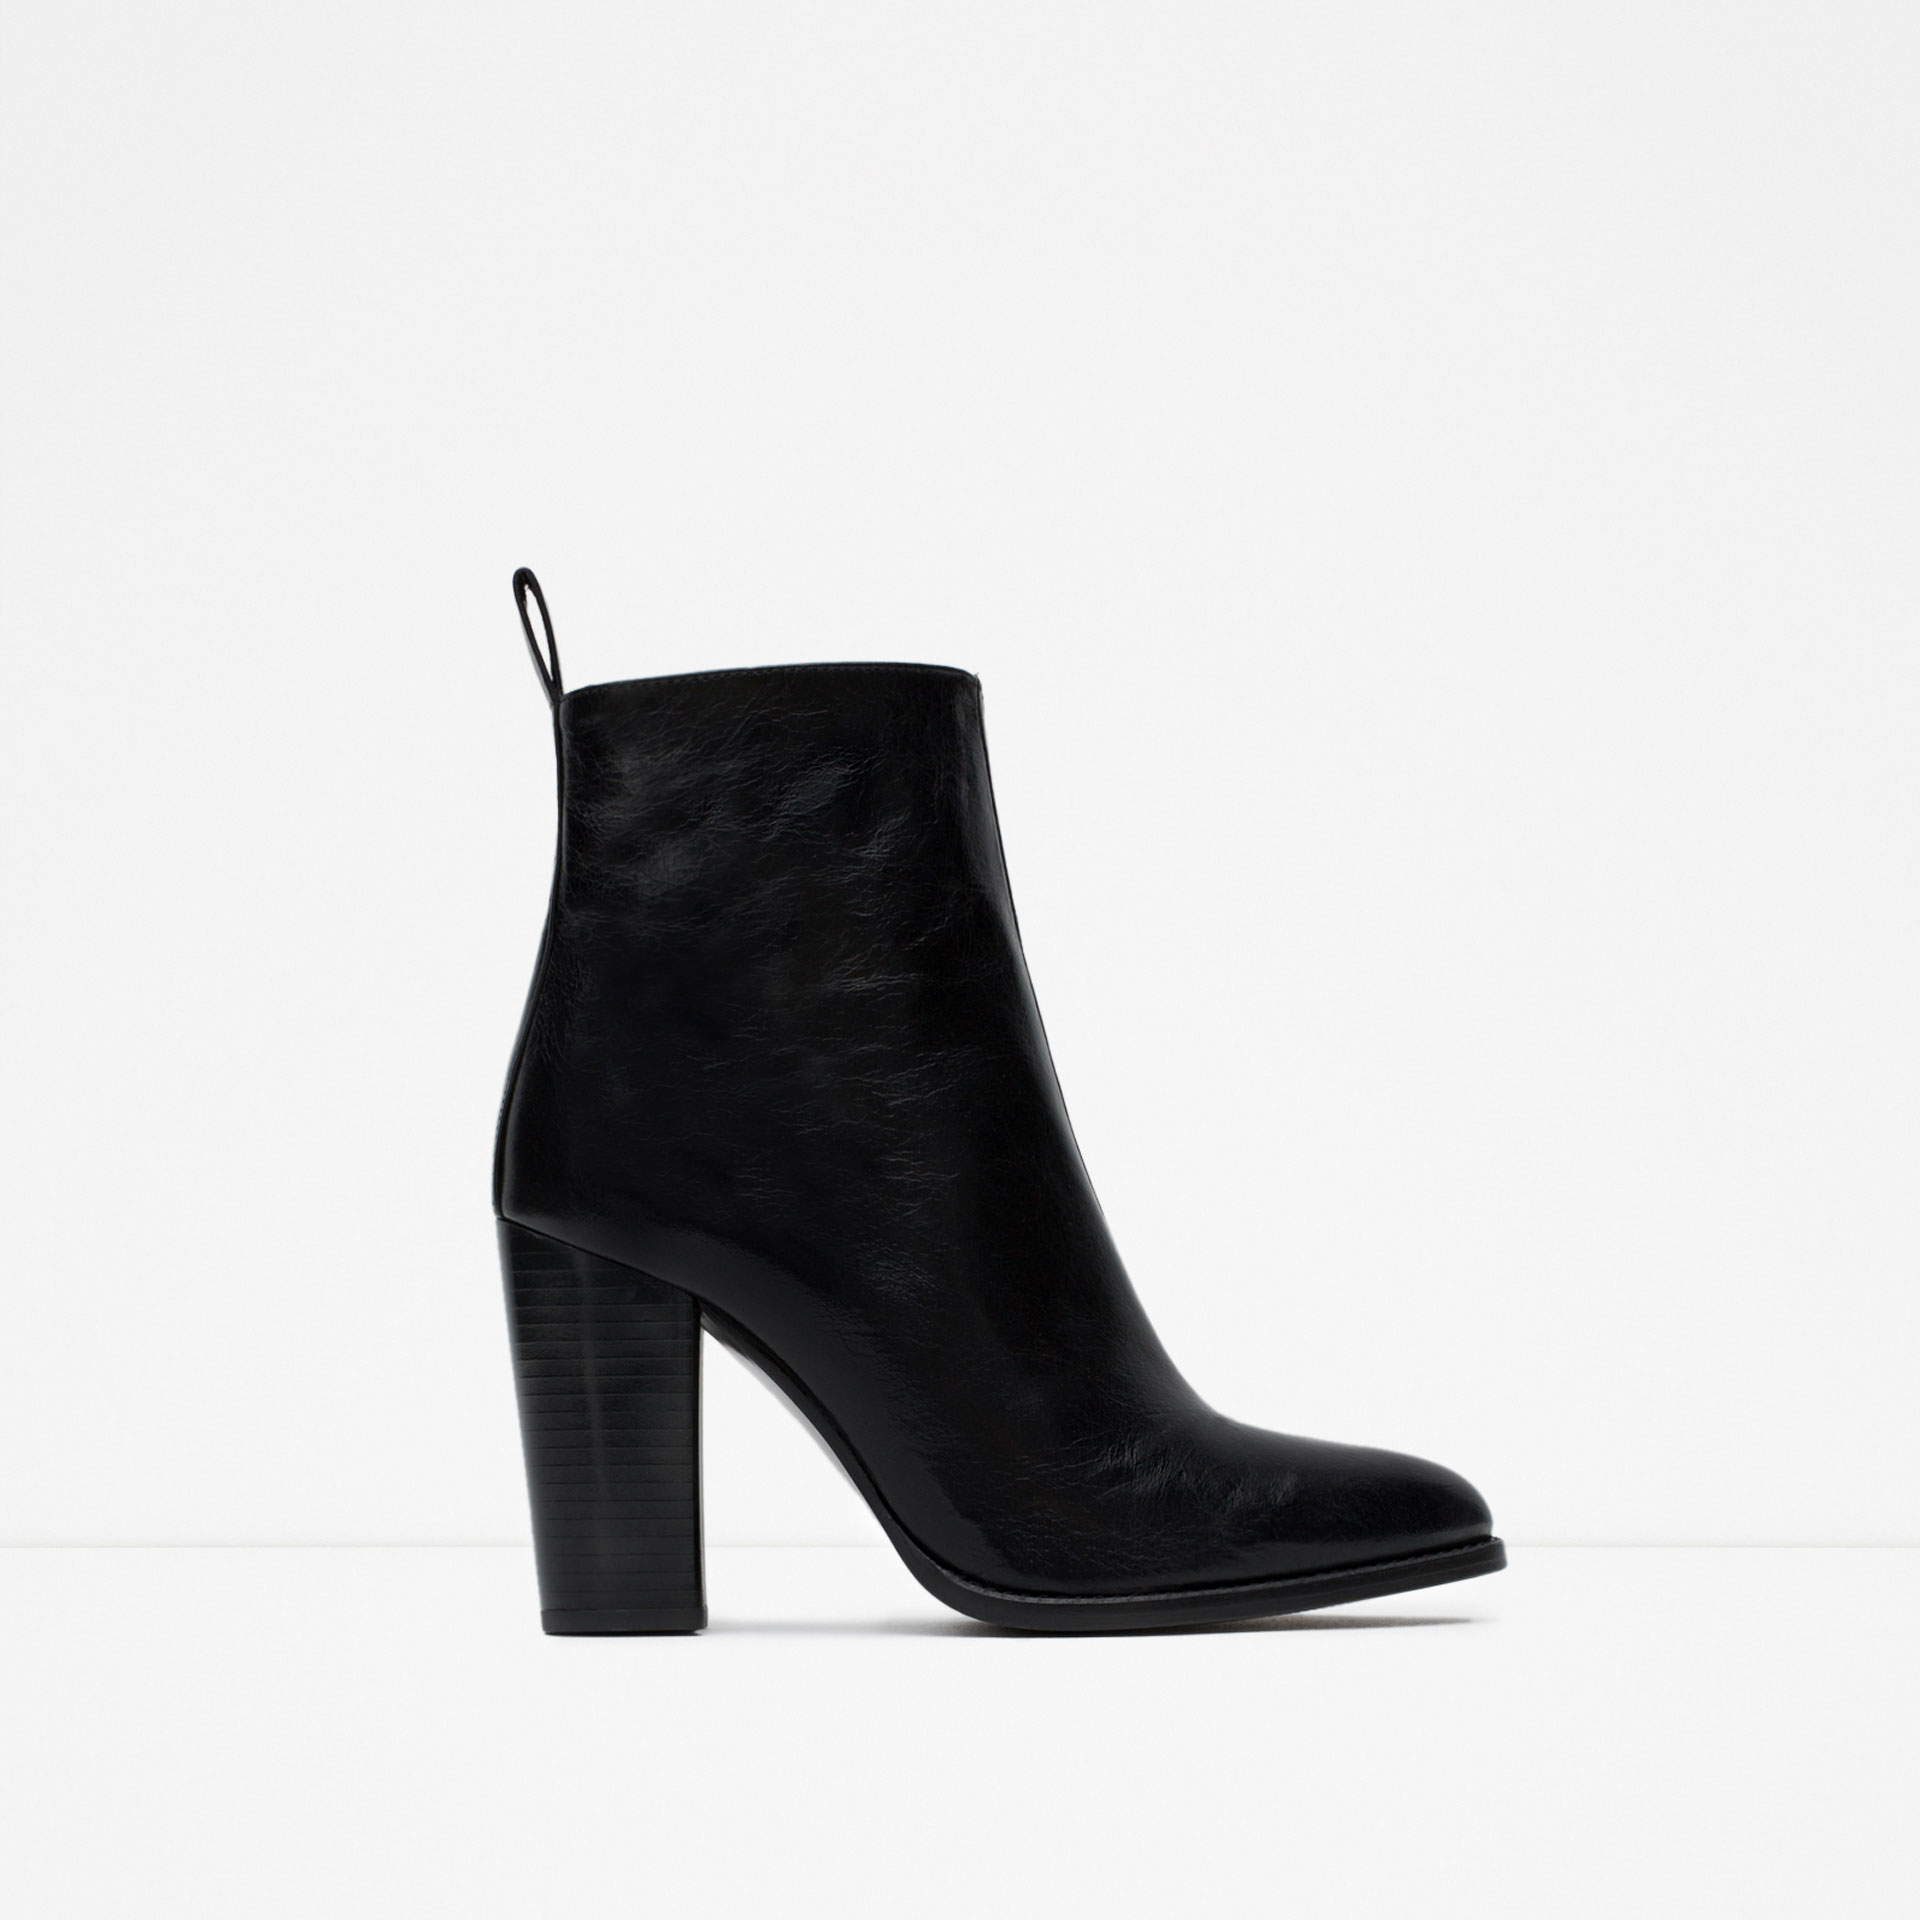 zara high heel leather ankle boots with pull tab in black